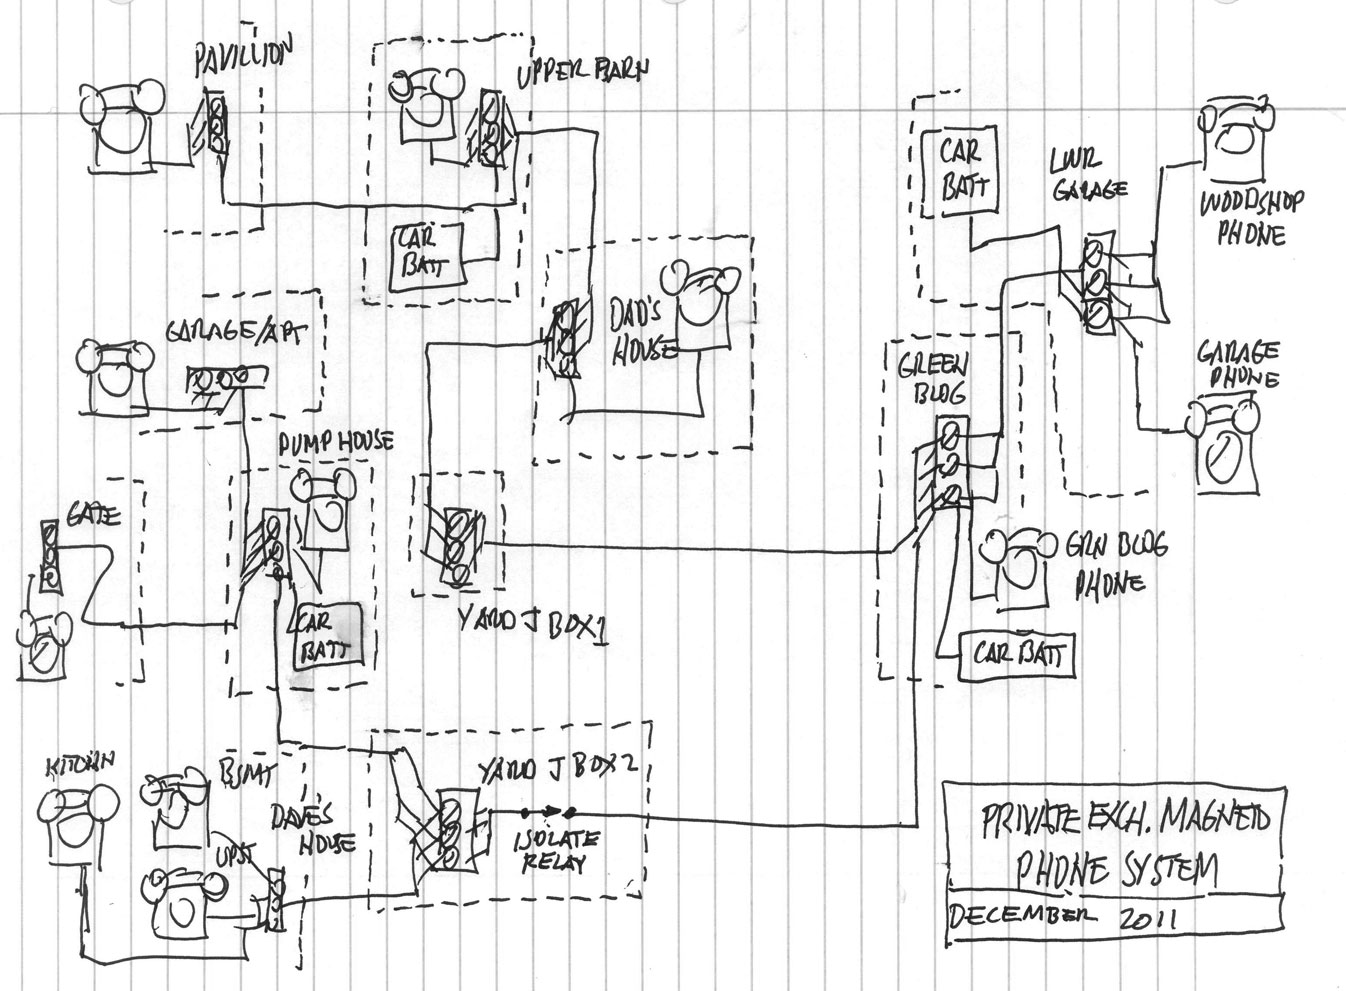 phonesysdiag kellogg telephone wiring diagram telephone wiring diagram on side Antique Phone Wiring Diagram at bayanpartner.co